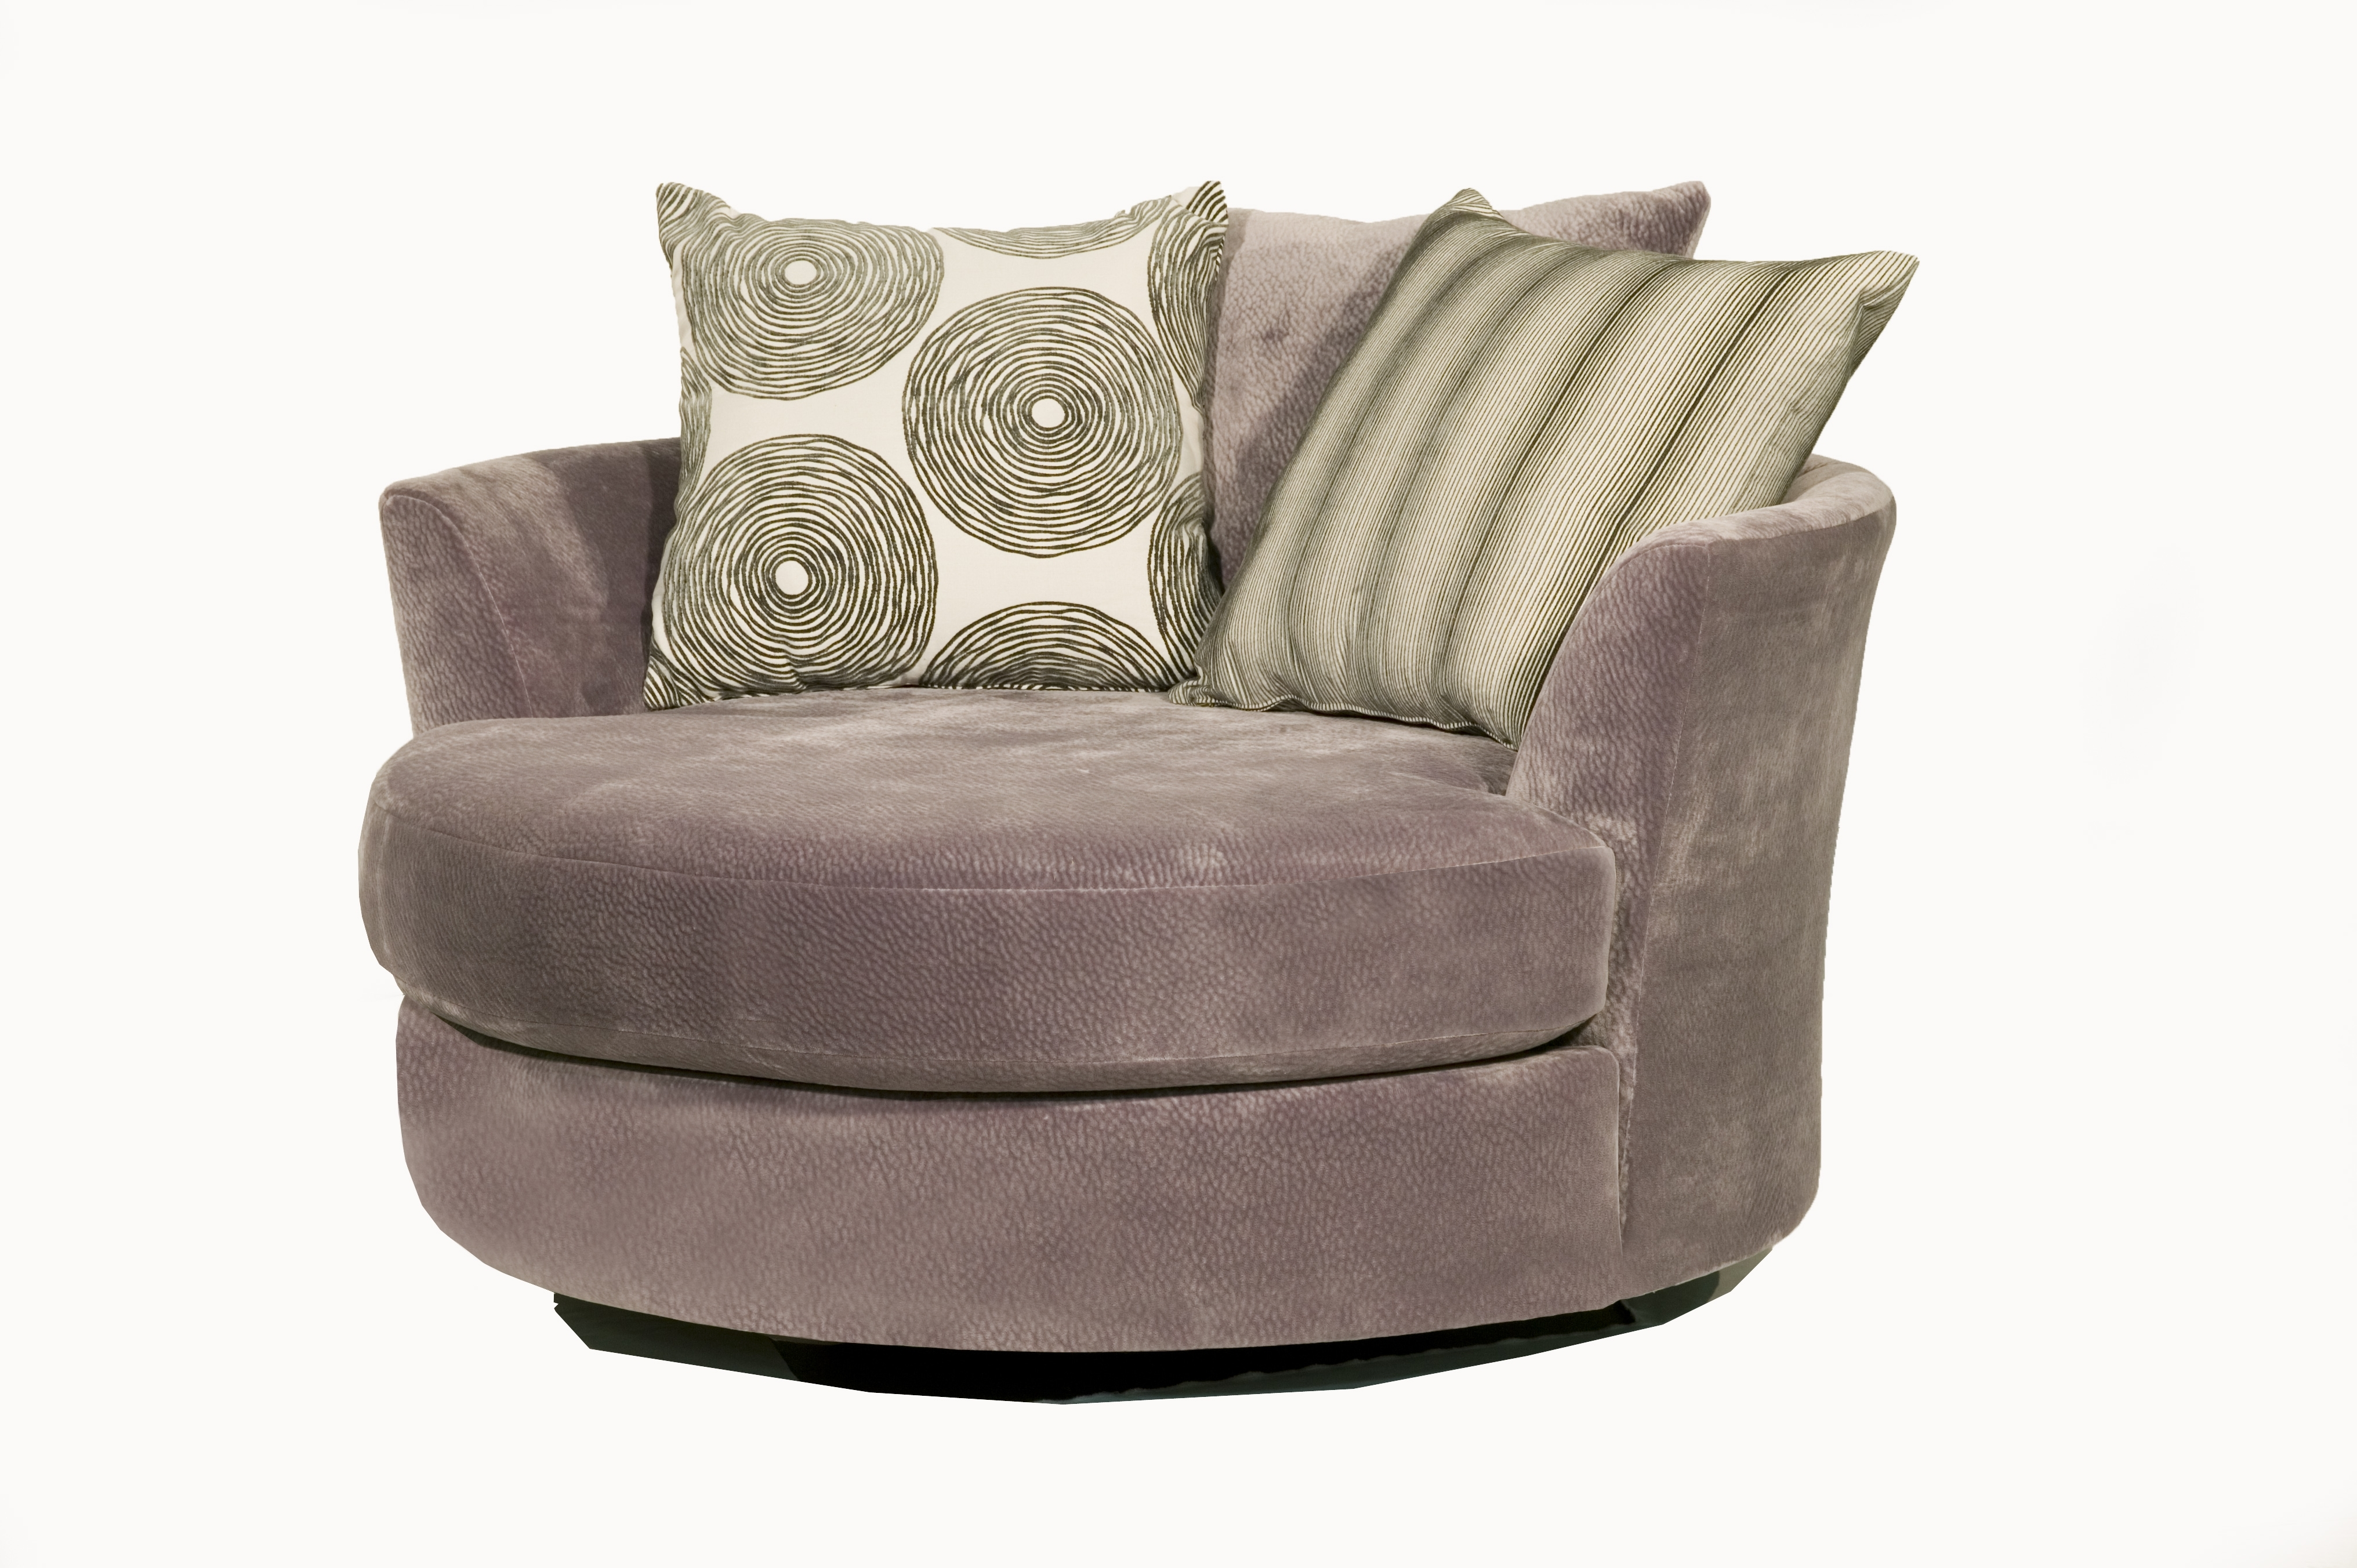 Robert Michael 9645 Cuddler Swivel Chair With Most Current Cuddler Swivel Sofa Chairs (View 6 of 20)